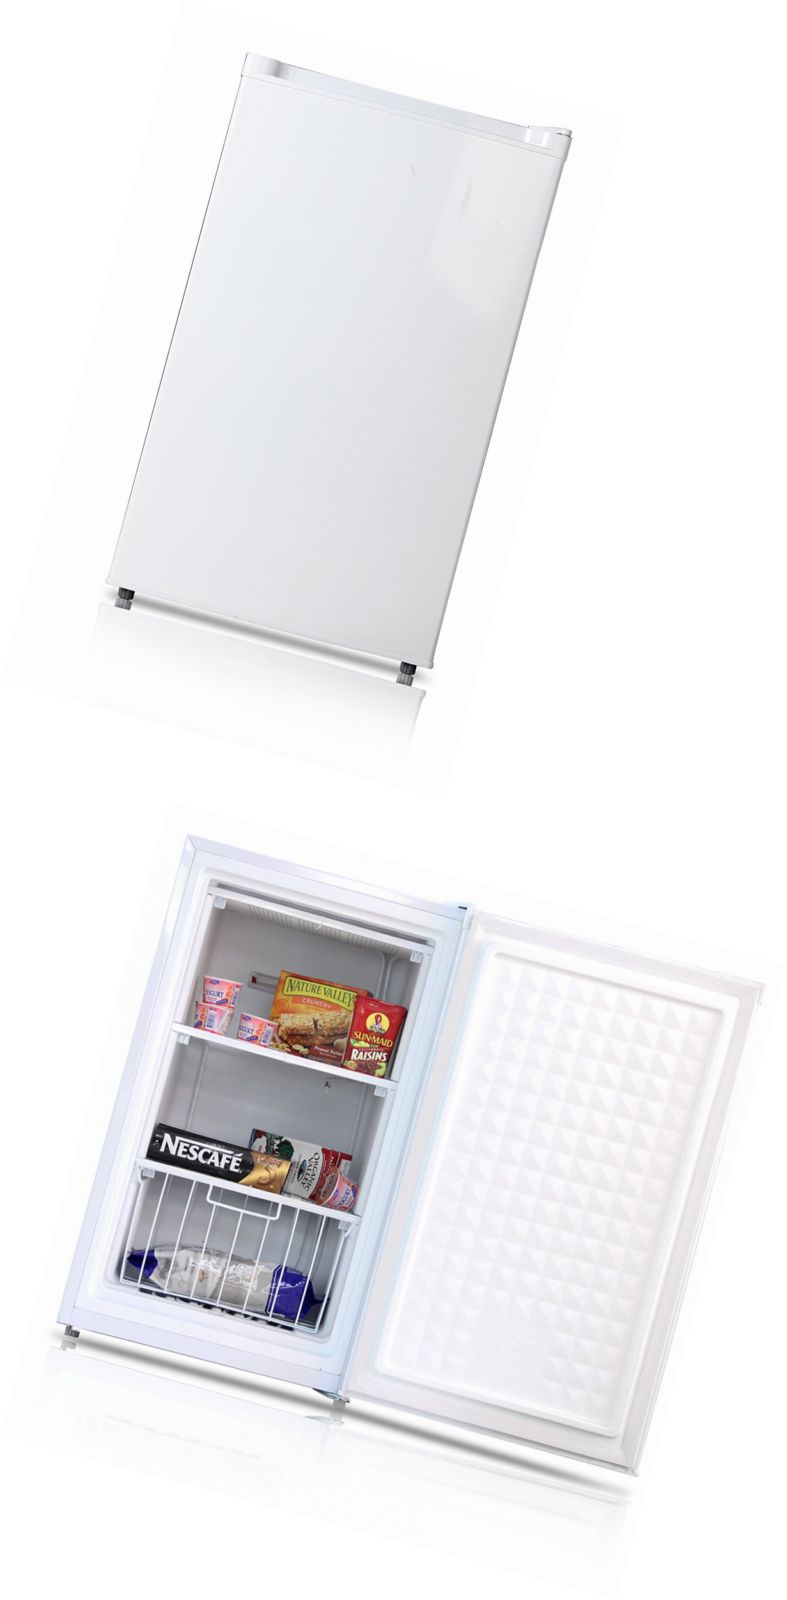 Midea stainless steel compact single reversible door upright freezers - Upright And Chest Freezers 71260 Midea Whs 109fw1 Compact Single Reversible Door Upright Freezer